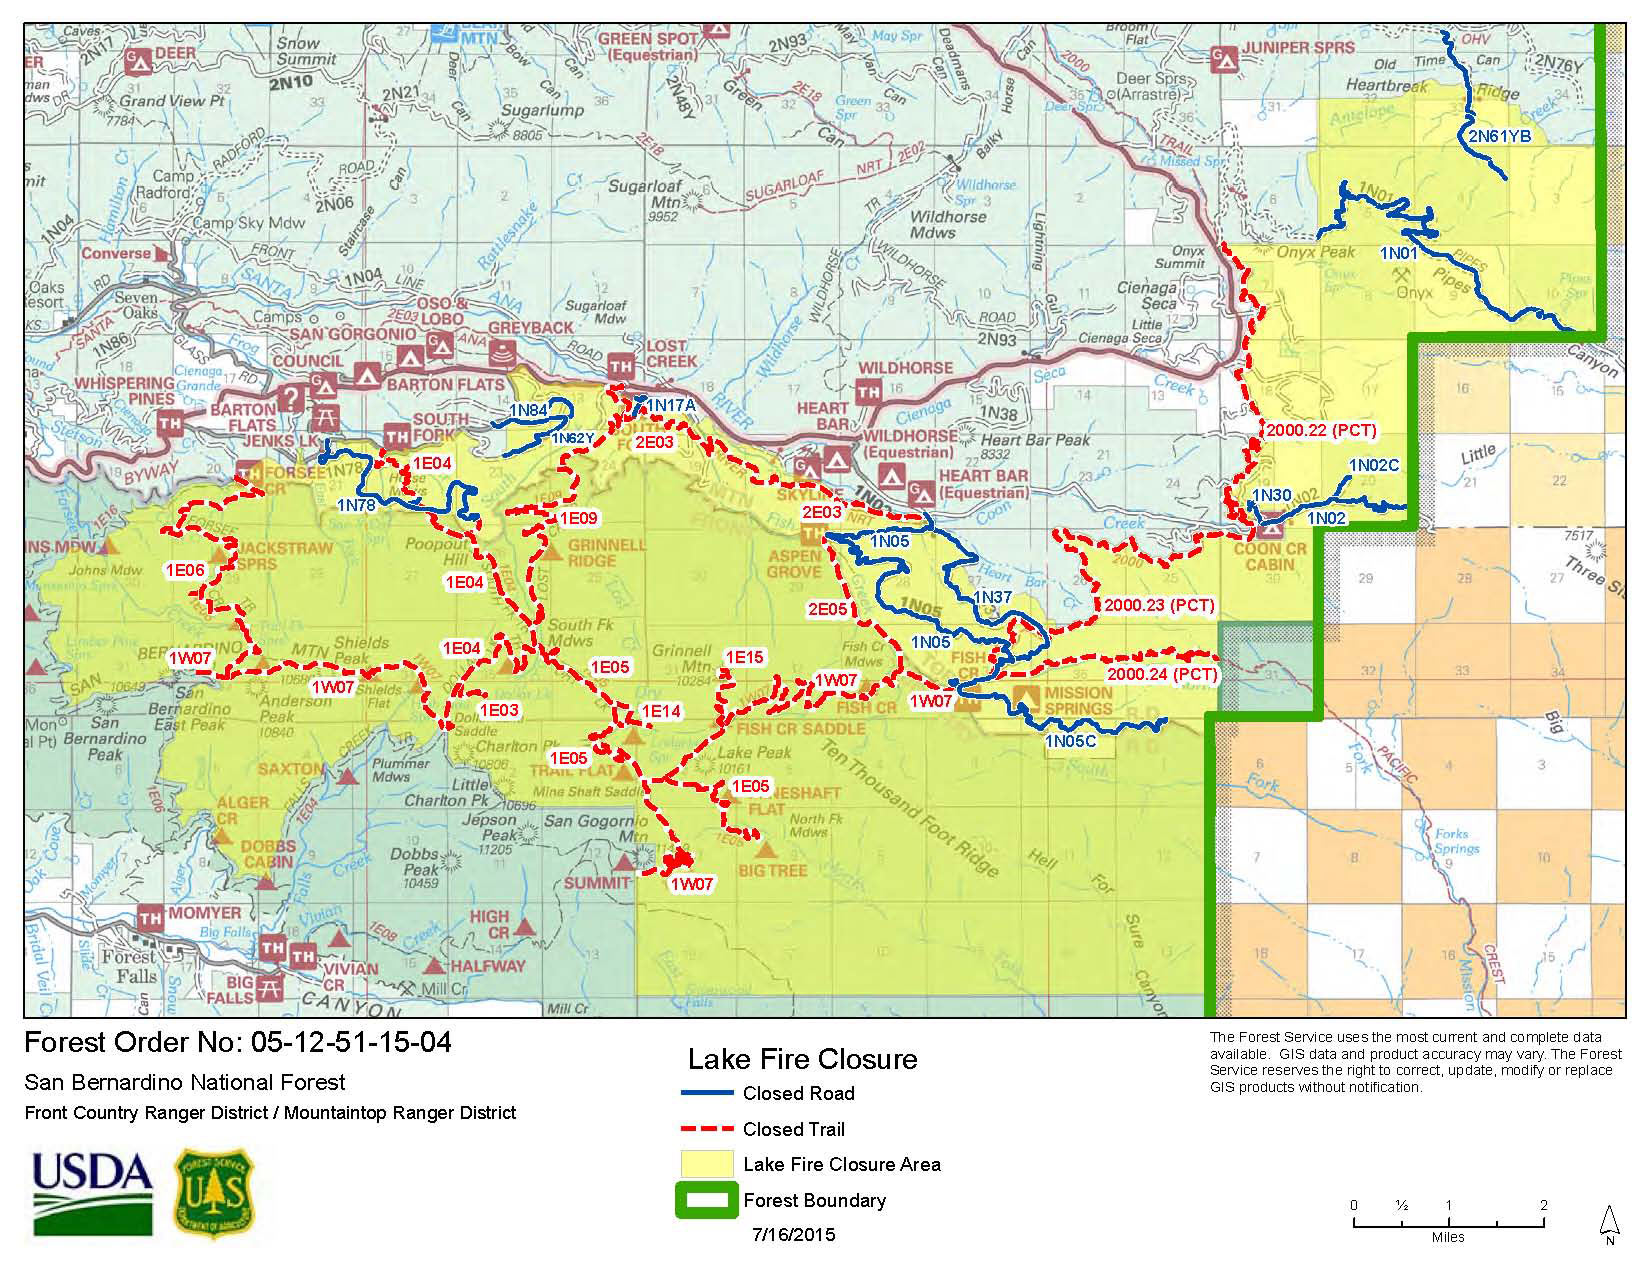 Lake Fire closure map published 7/16/15.